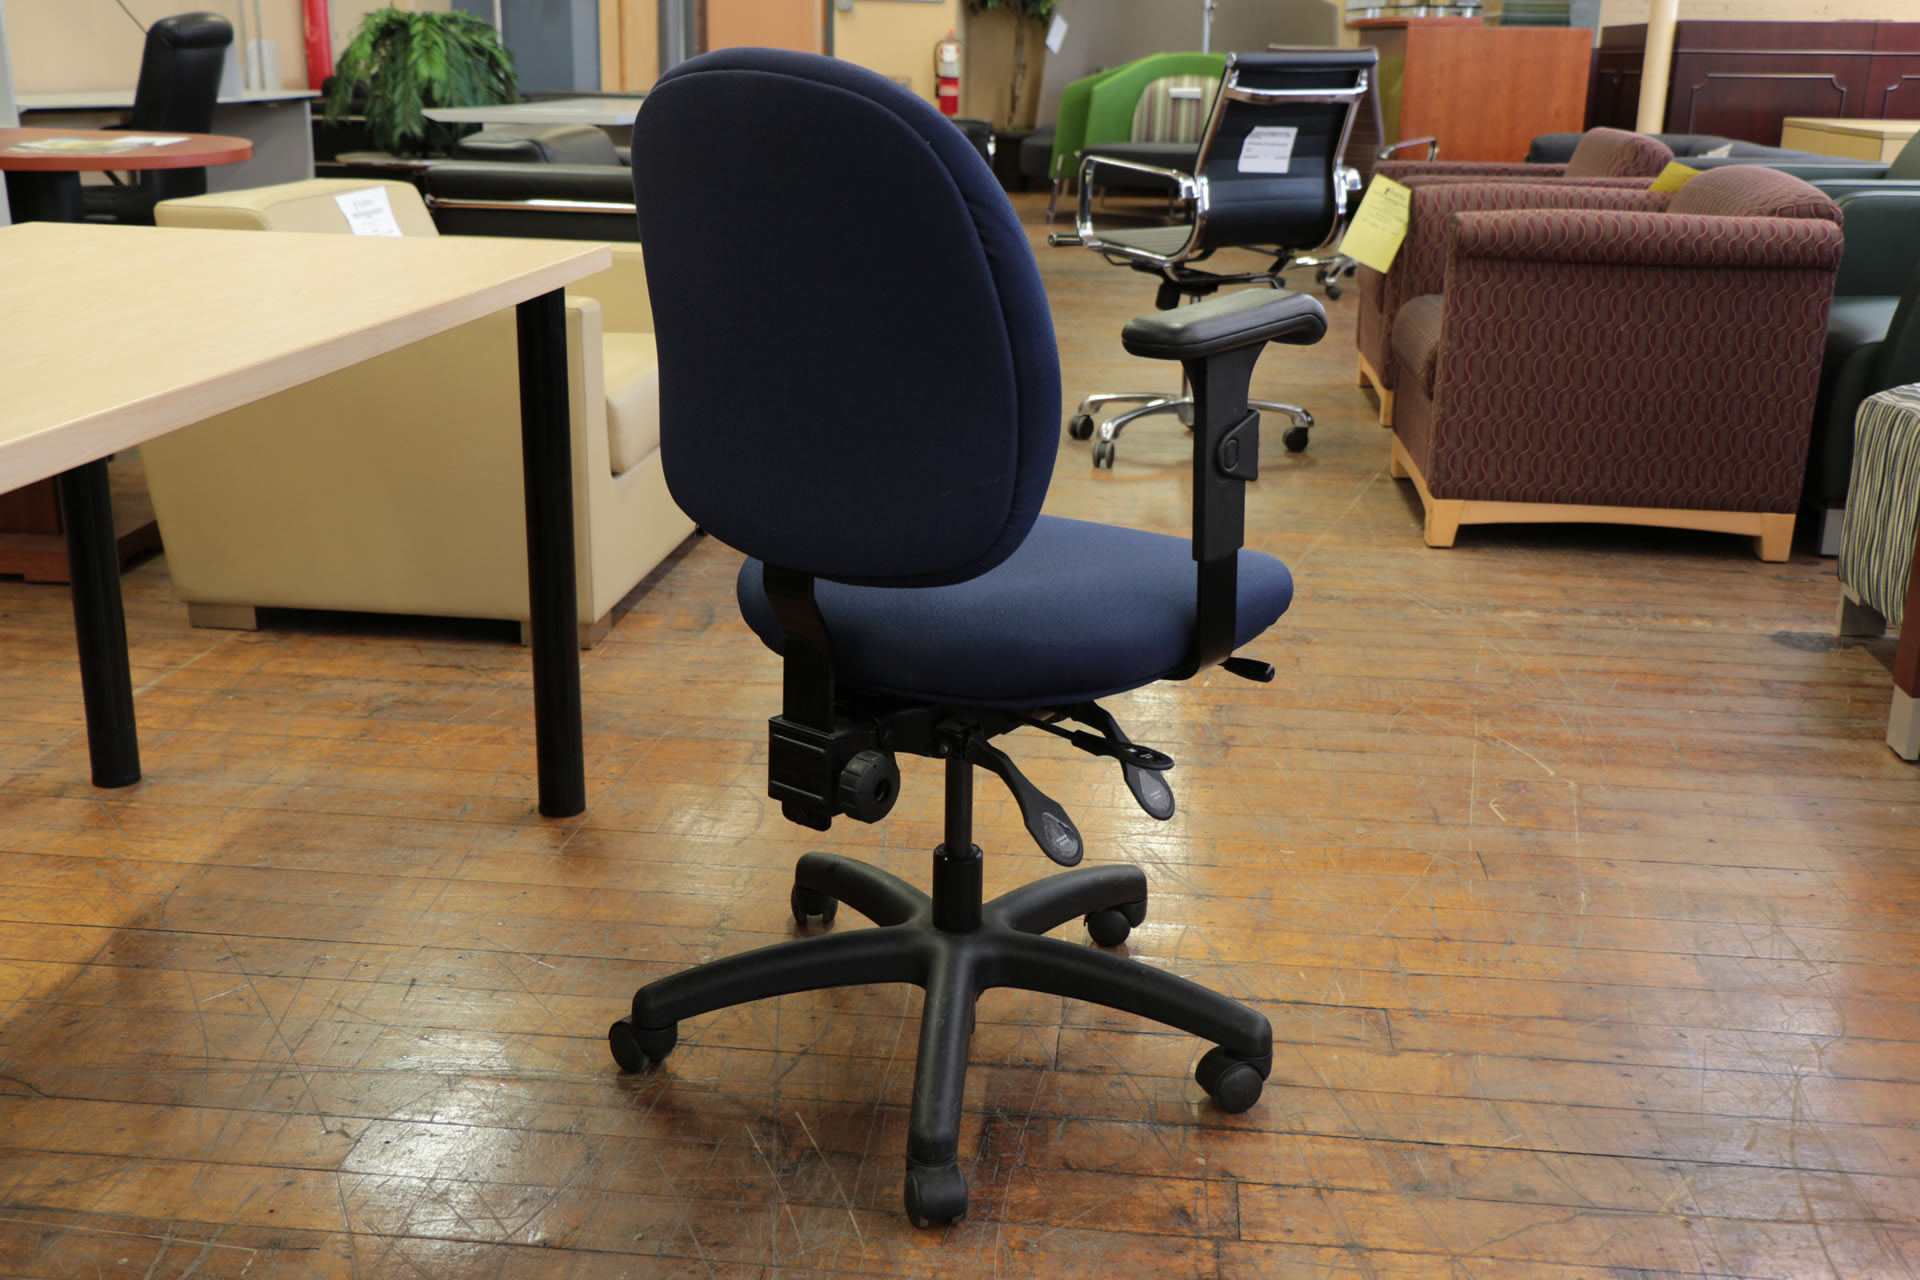 Stylex Click Chairs